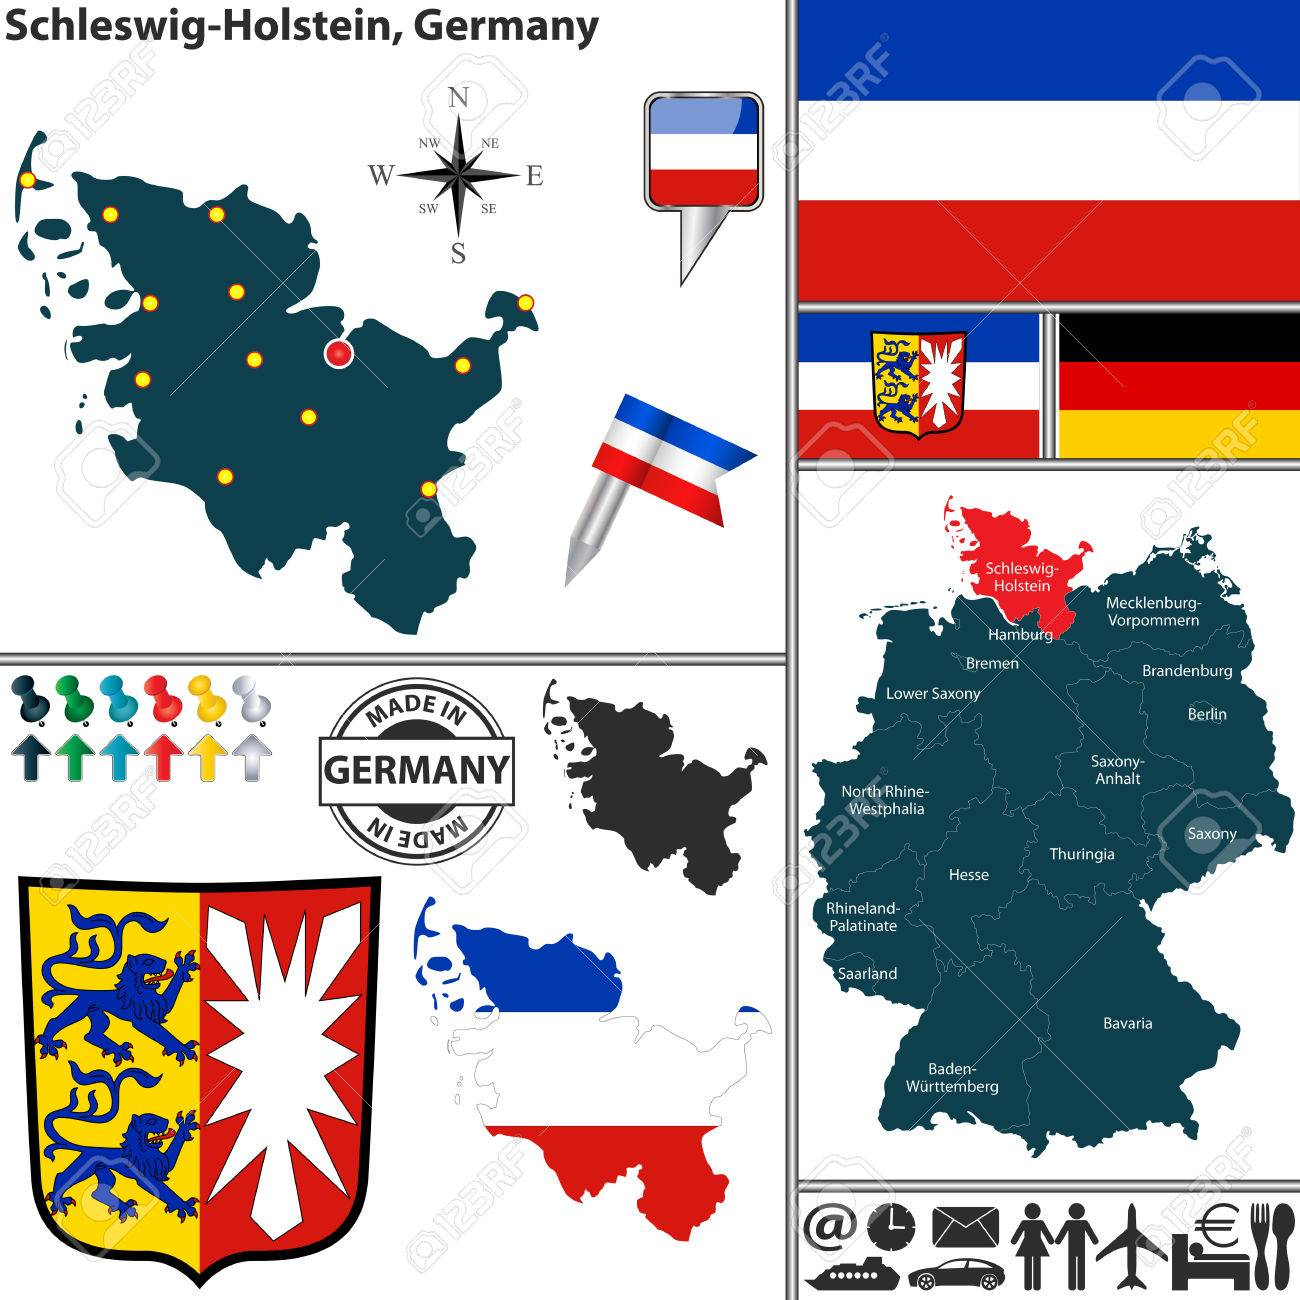 Map Of State SchleswigHolstein With Coat Of Arms And Location - Germany map location